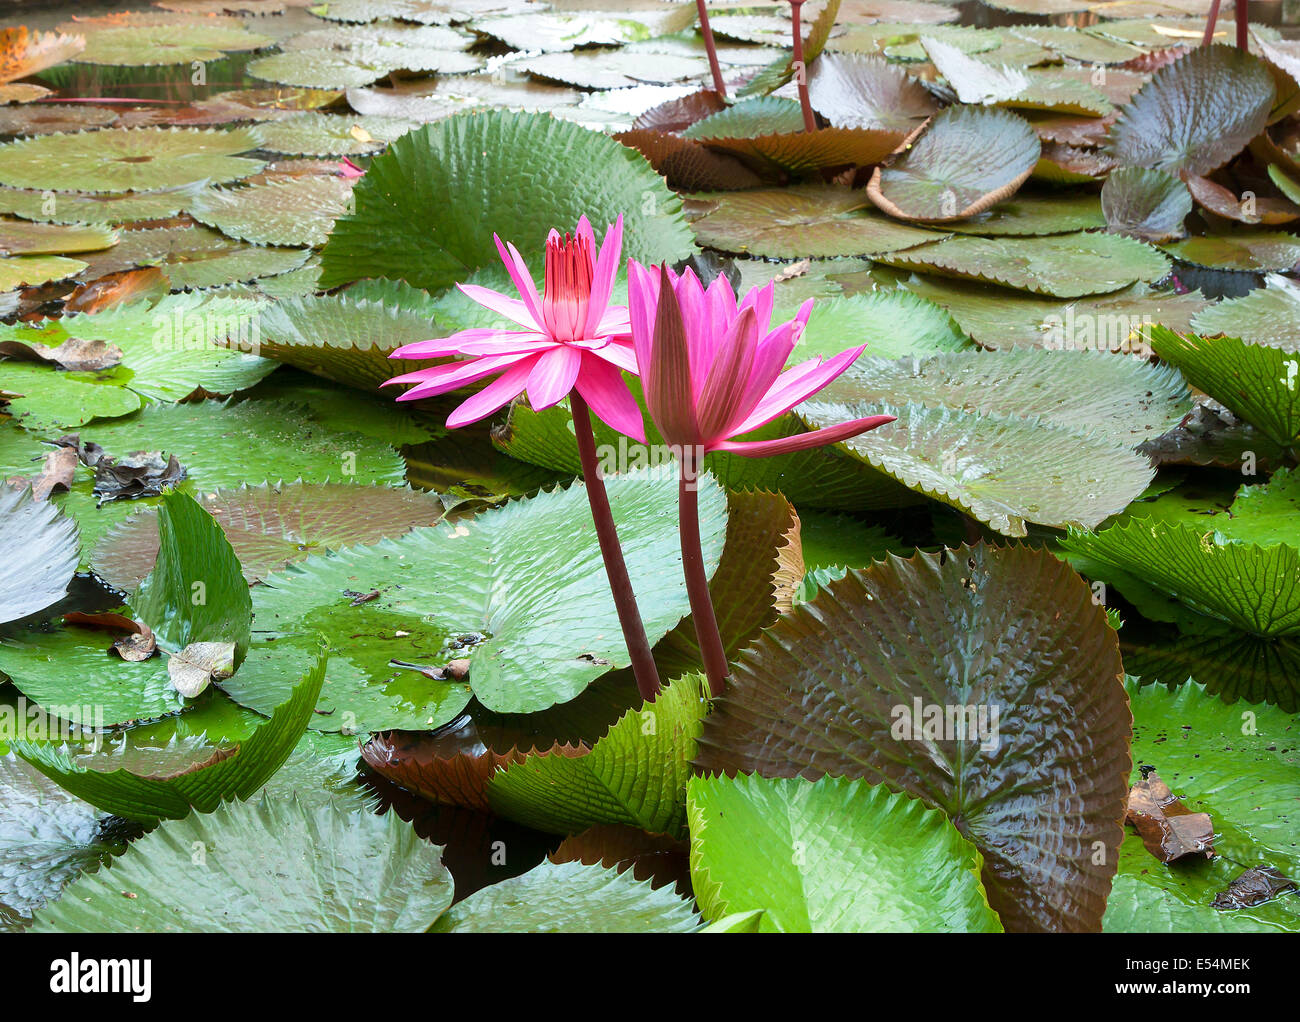 Image Of A Lotus Flower On The Water Stock Photo 72018651 Alamy